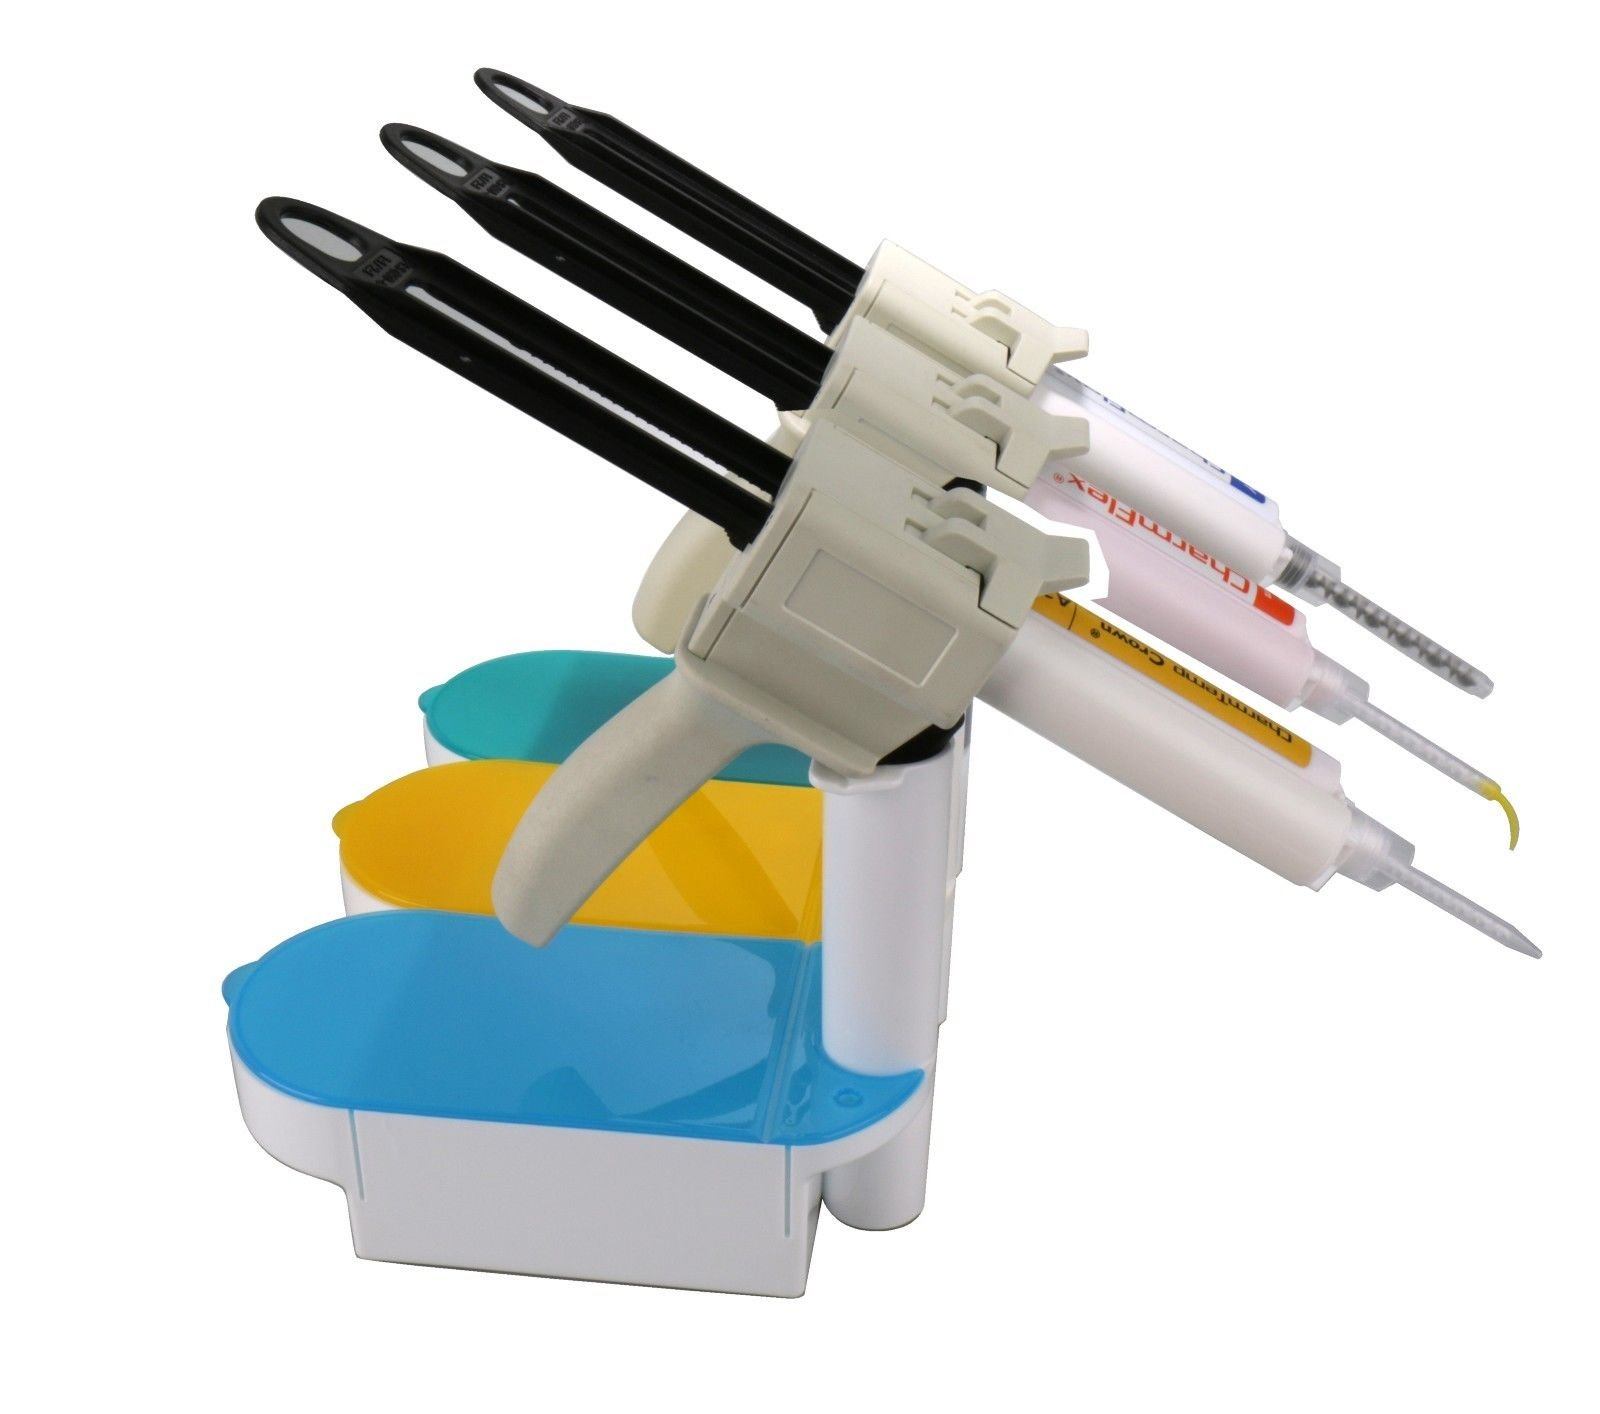 Holder for Dental Impression Dispenser Gun/Dental Mixing Tip/Dental Intra-Oral Tips Organizer